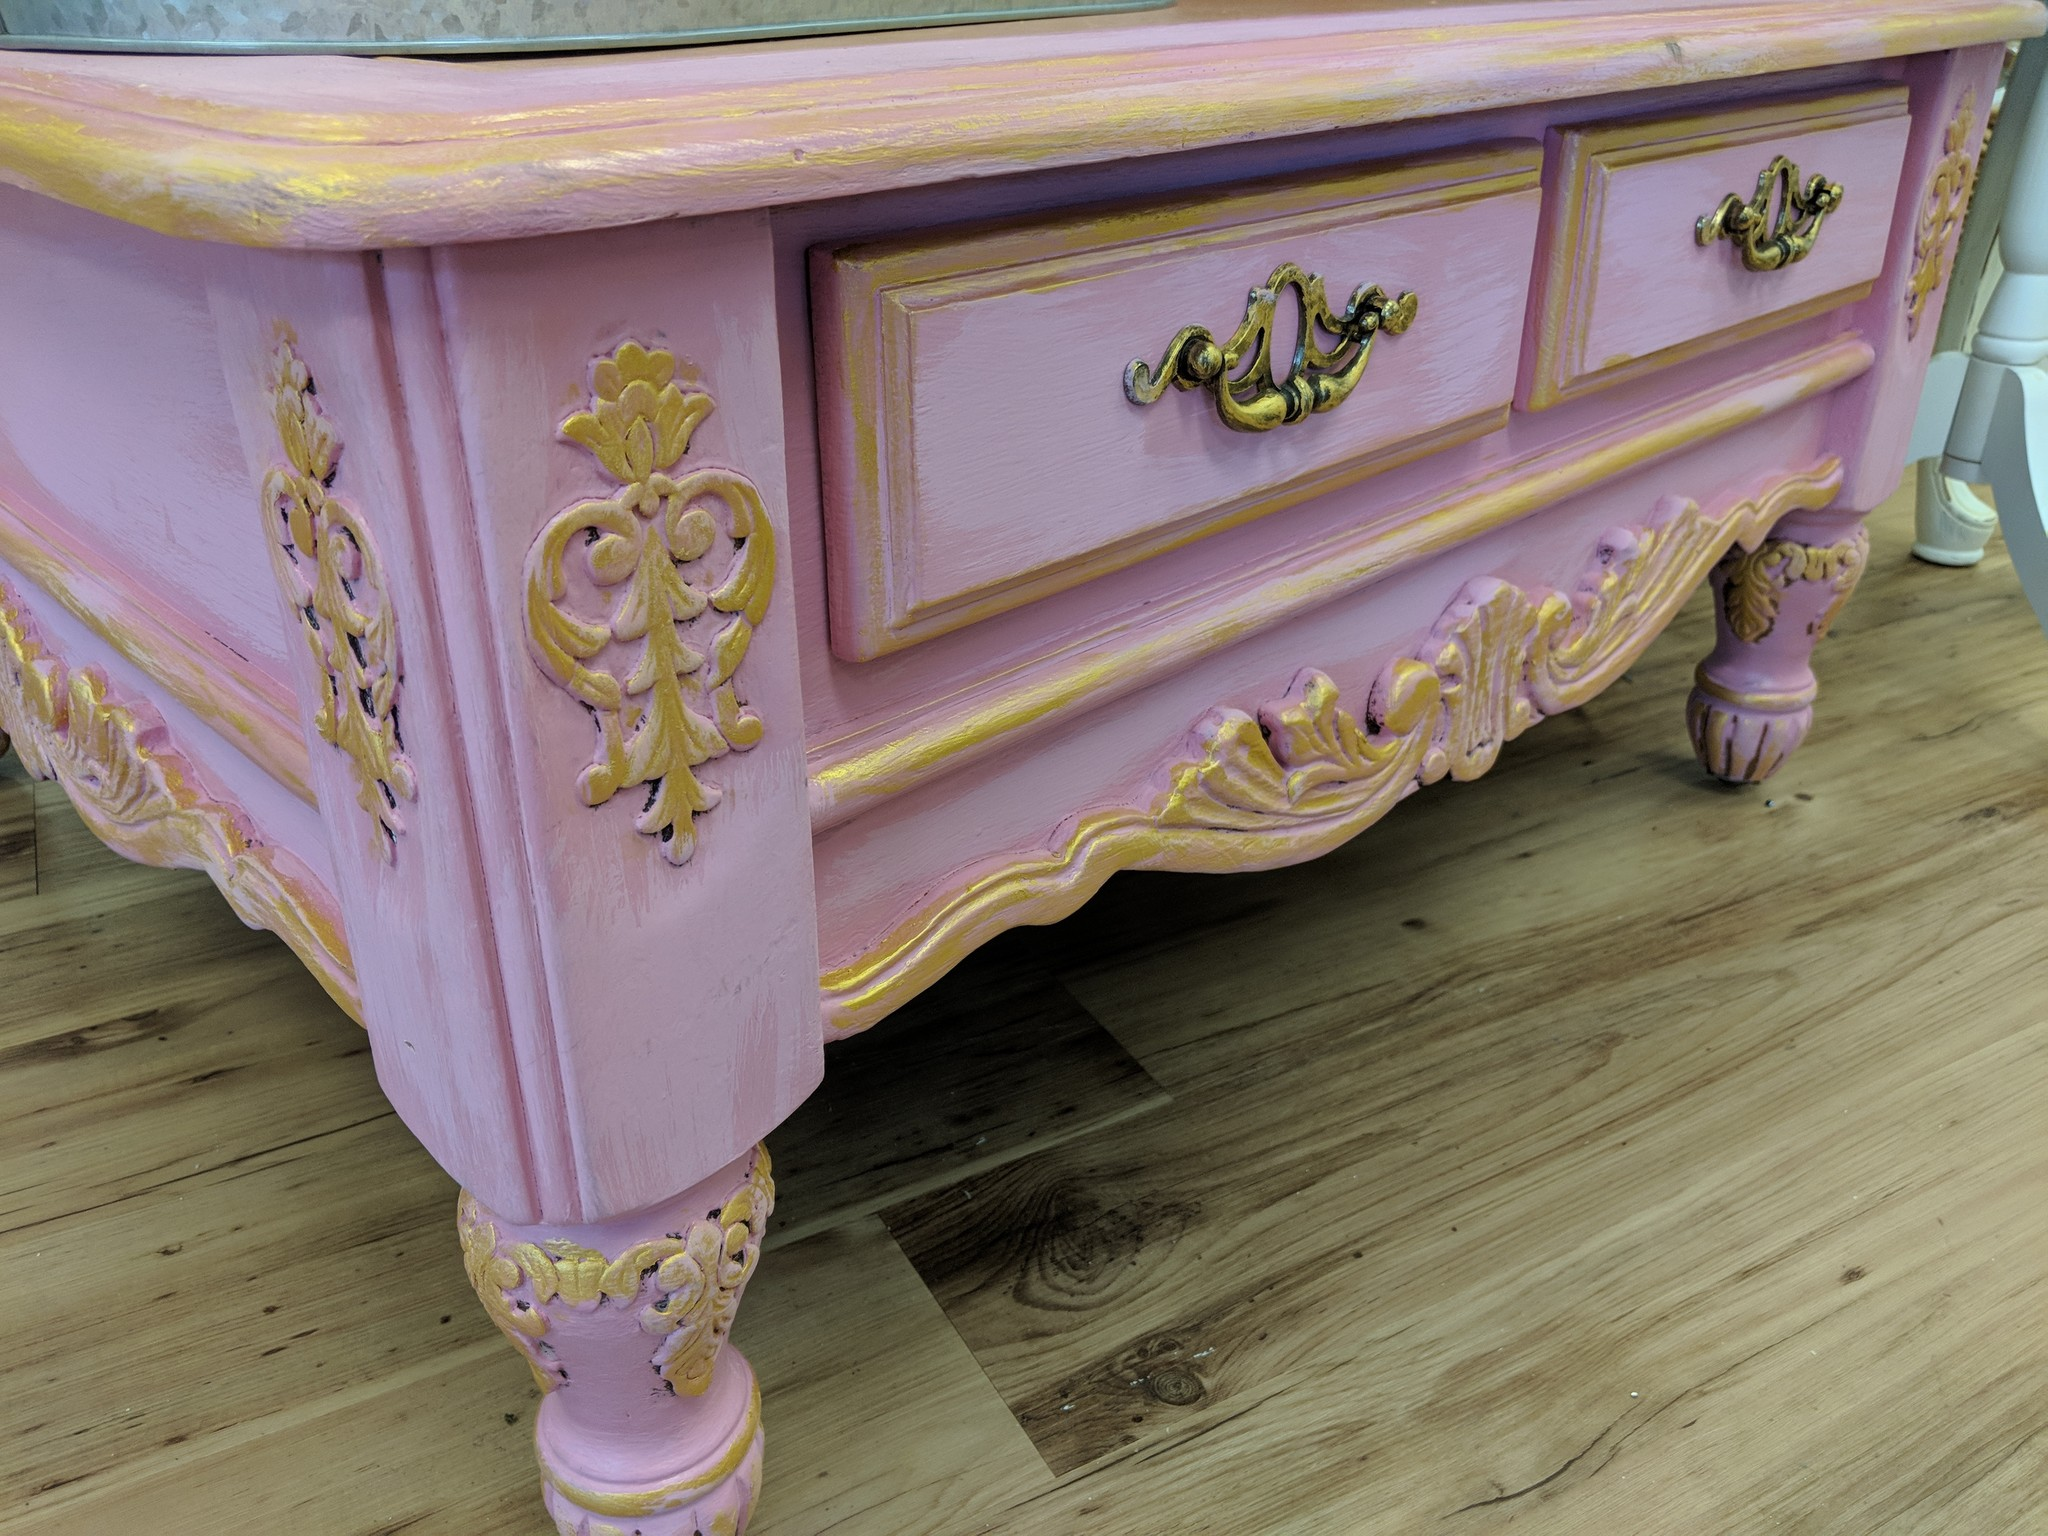 Watch and Learn: Furniture Painting Basics: October 24th 1pm